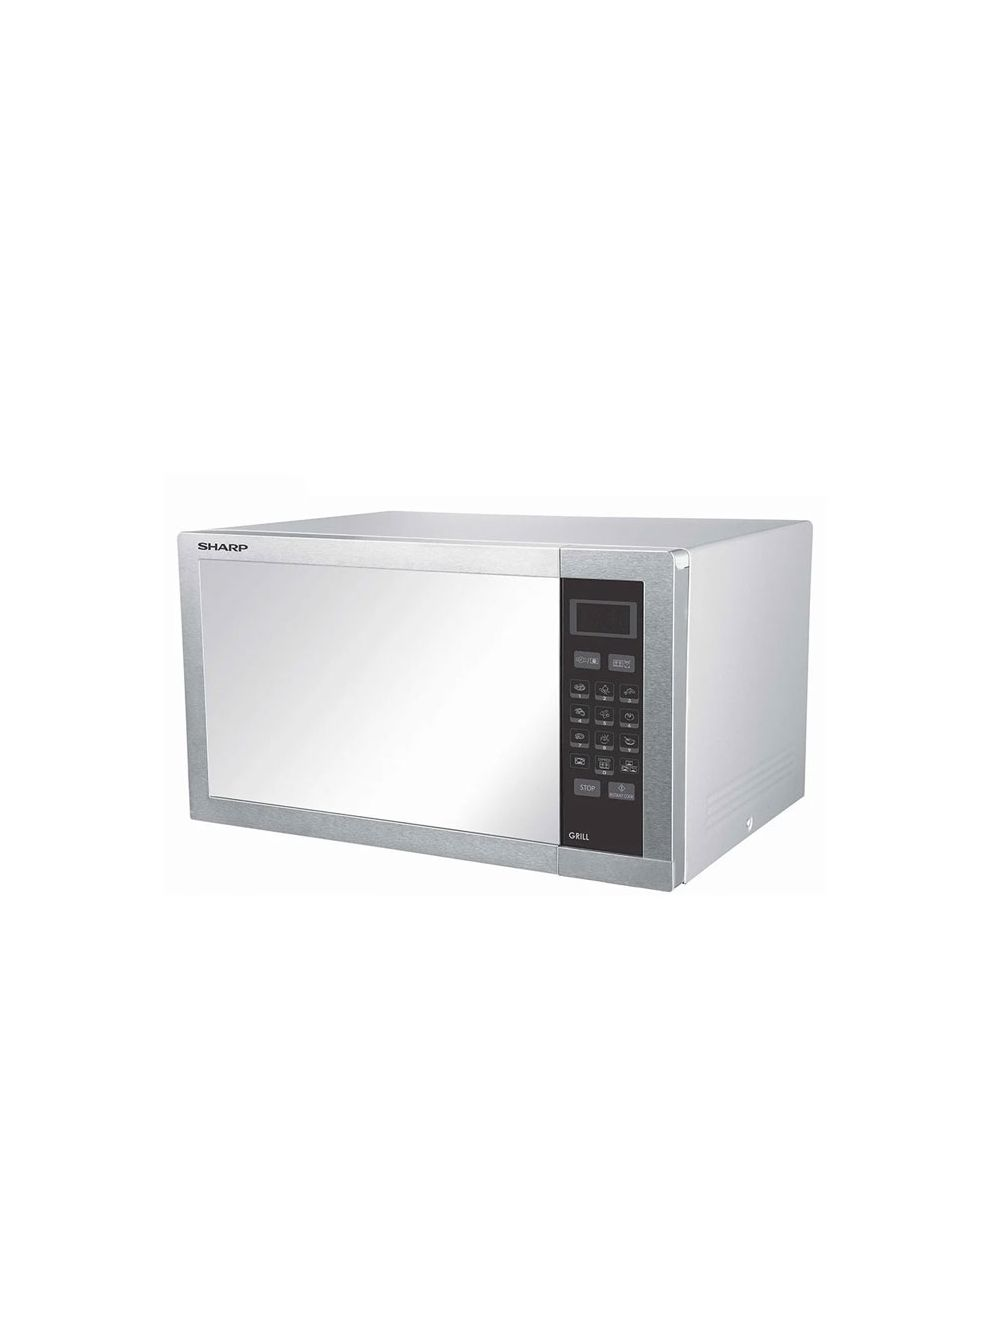 sharp microwave grill 34 l 1000w stainless with grill and 9 cooking menus r 770ar st